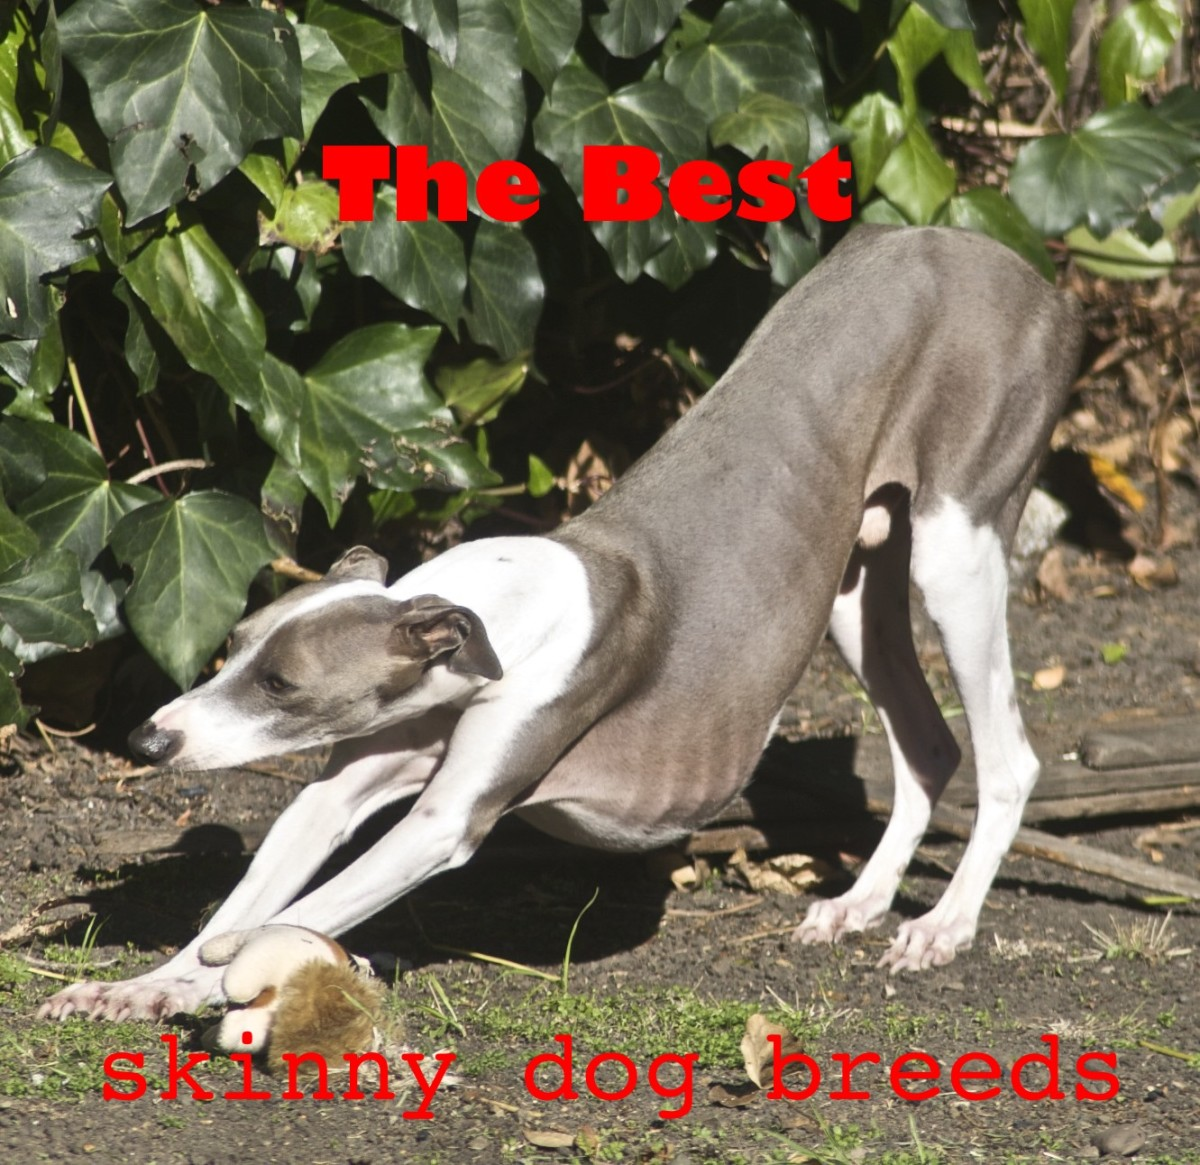 5 Skinny Dog Breeds You Will Want to Bring Home